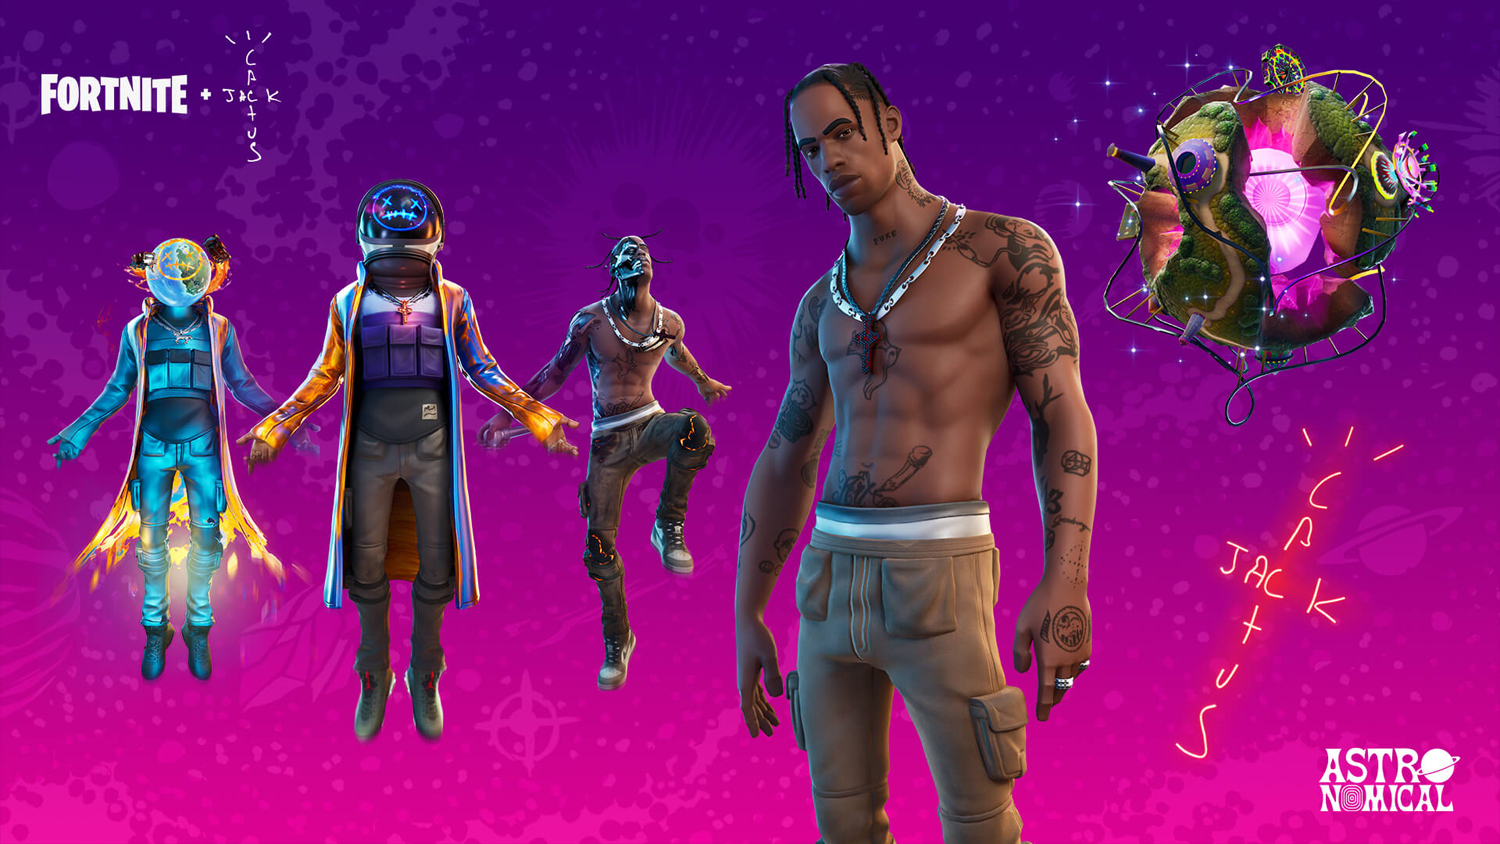 Play some Fortnite and listen to a new track from Travis Scott